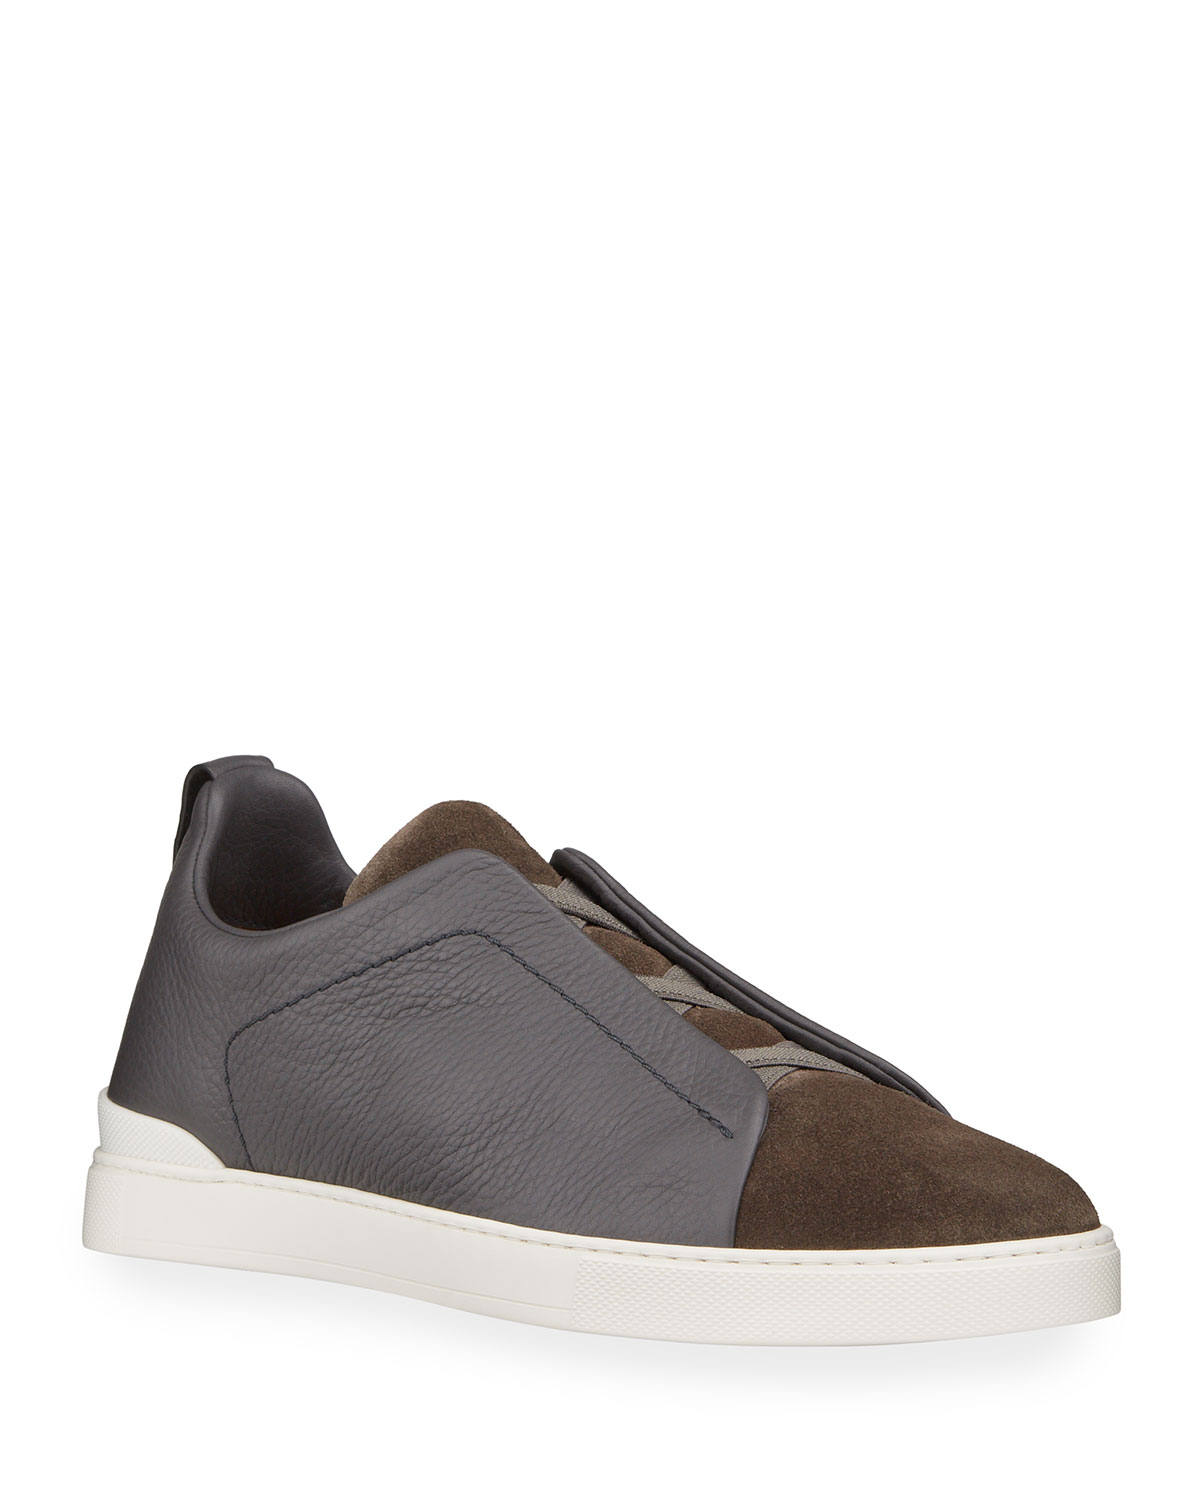 Men's Triple-Stitch Mix-Leather Slip-On Sneakers